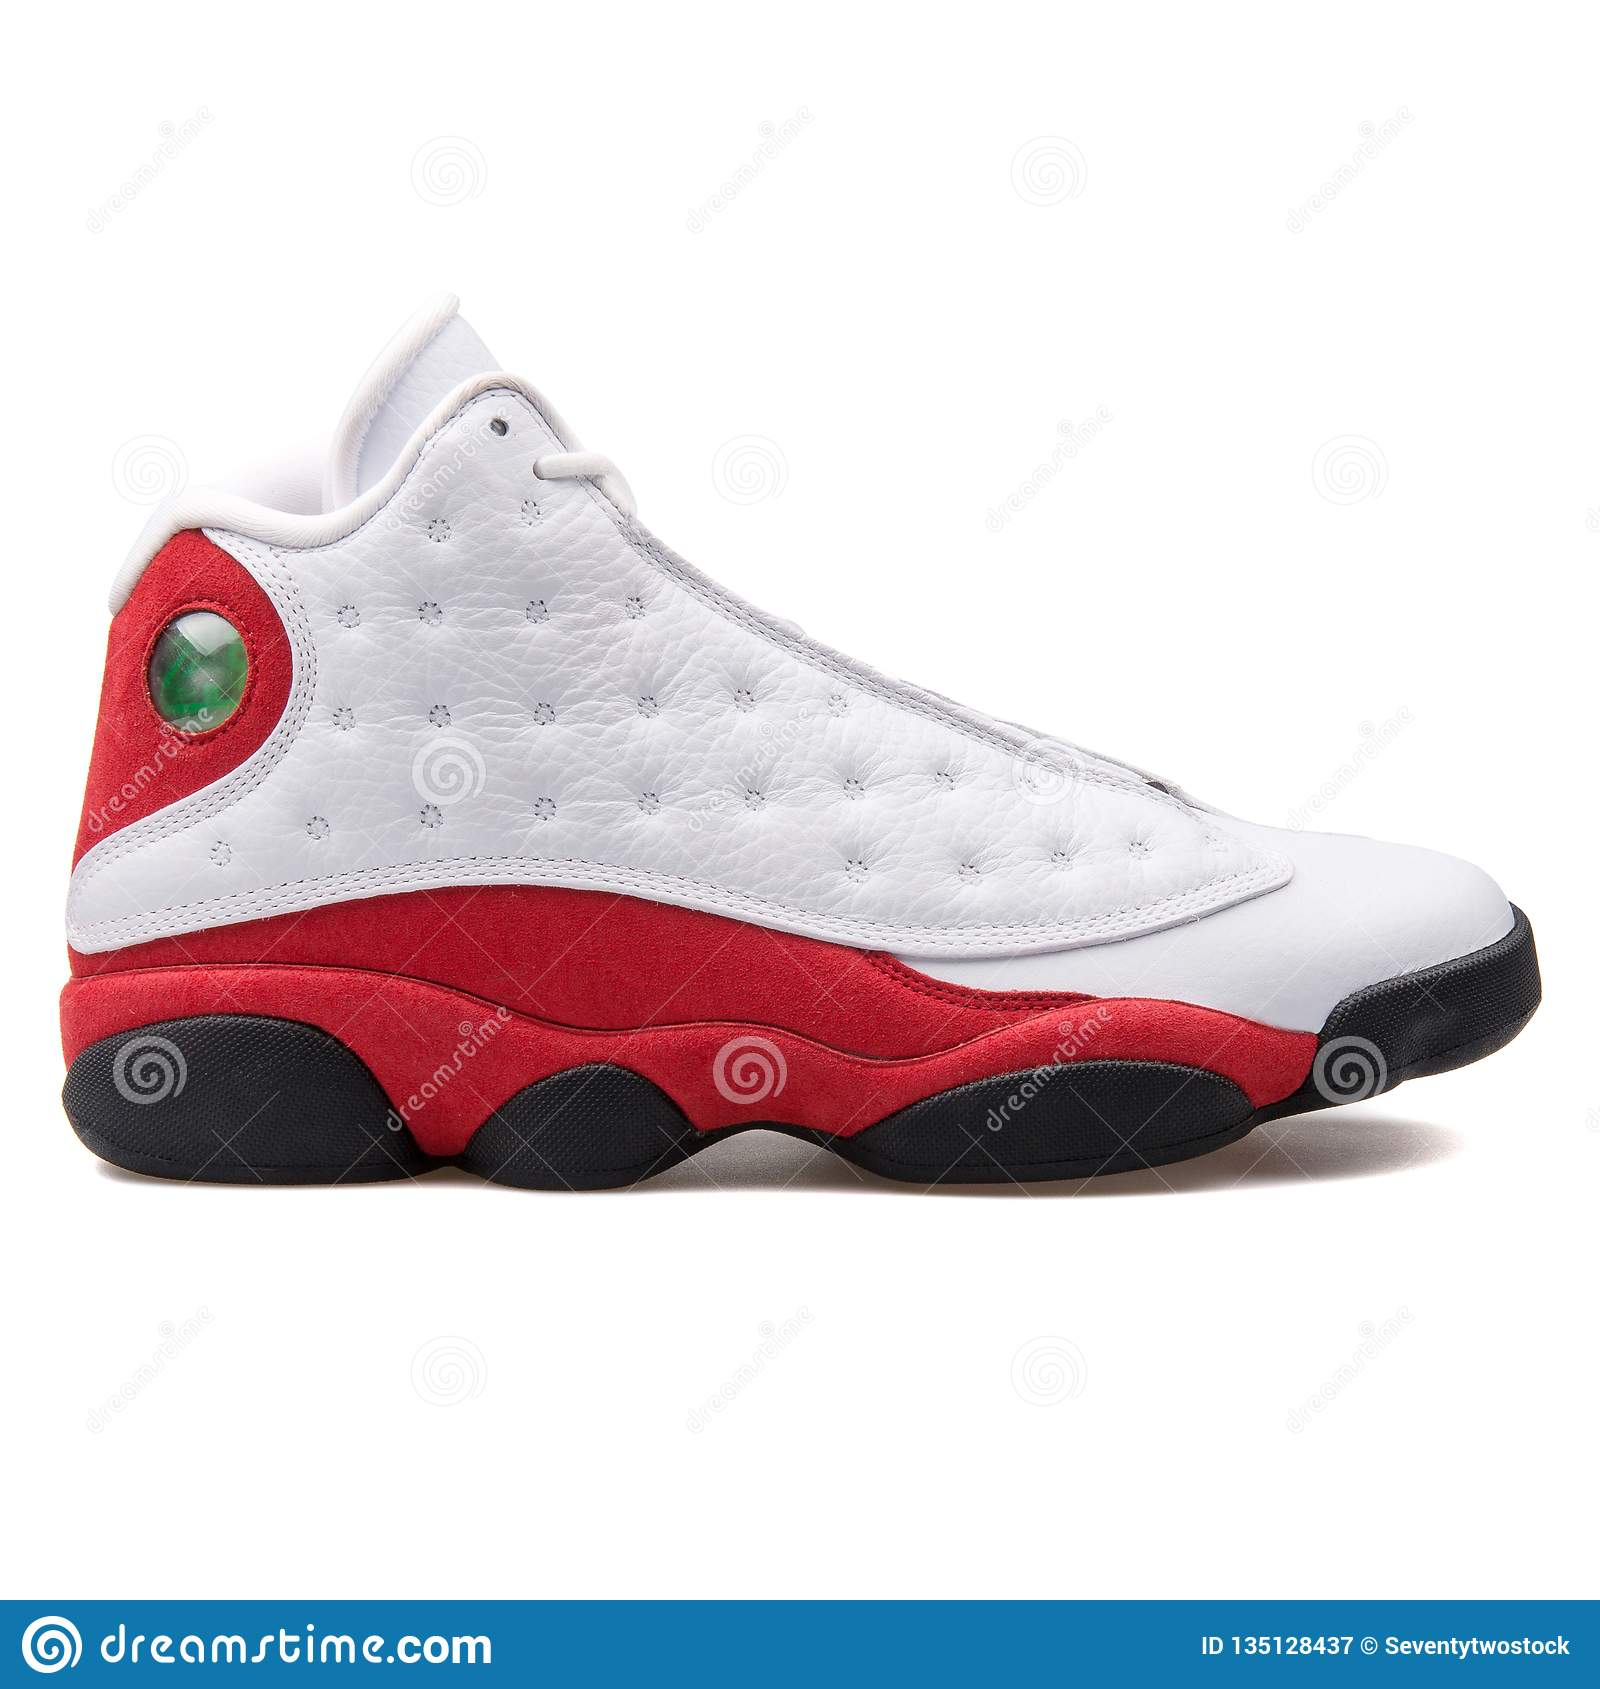 new style f6d93 233c4 Nike Air Jordan 13 Retro OG White, Red And Black Sneaker ...